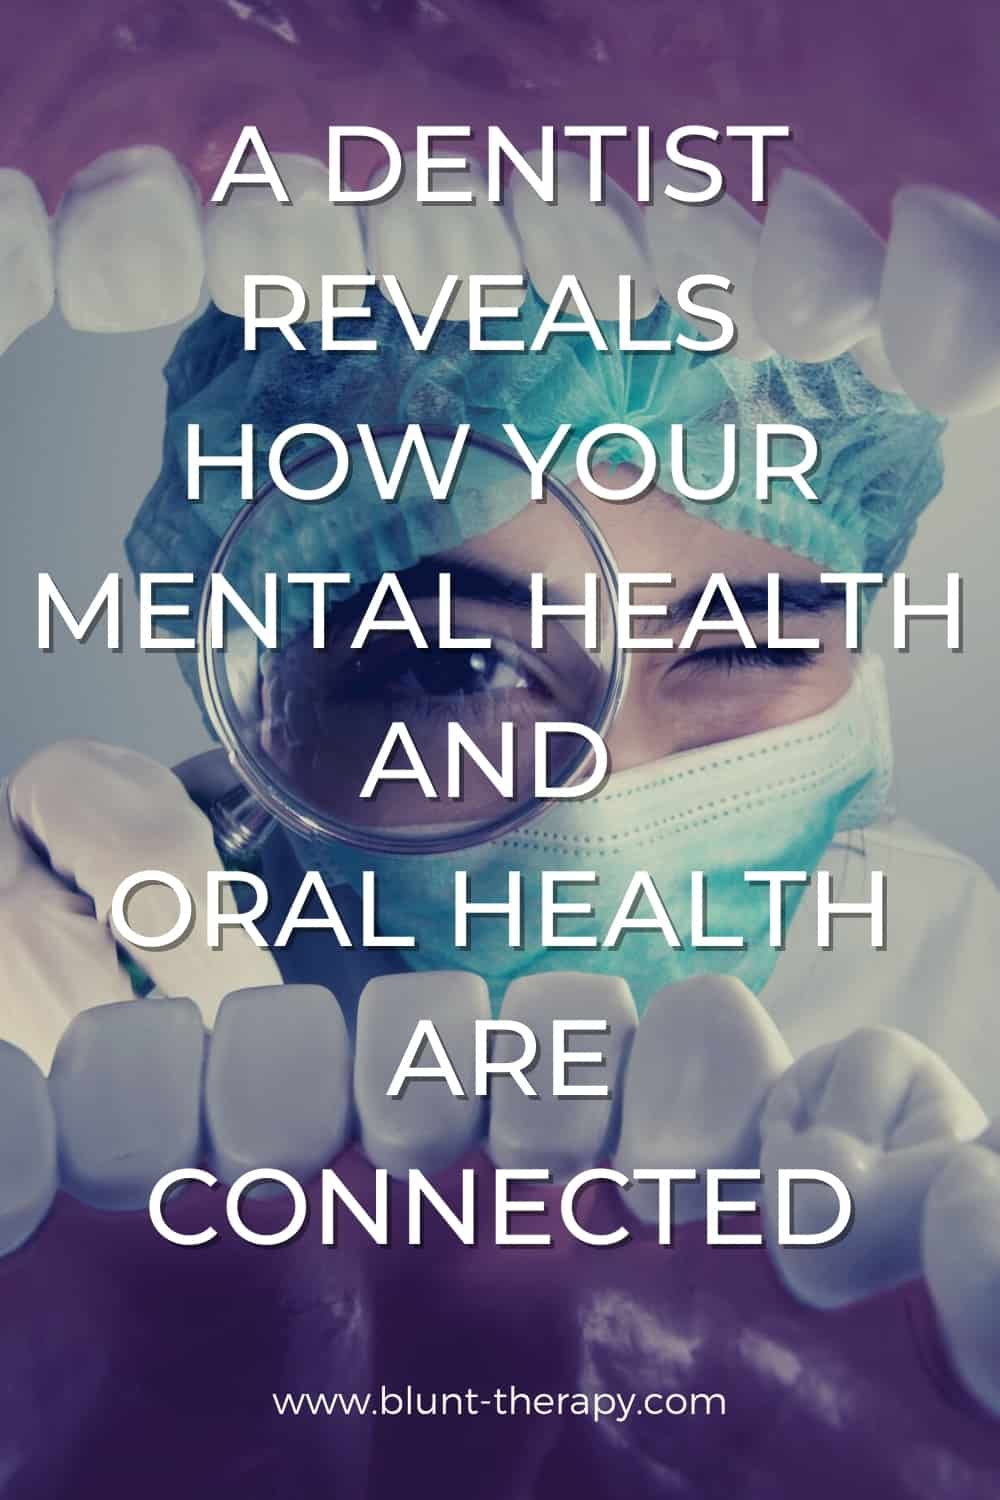 A Dentist Reveals How Your Mental Health and Oral Health Are Connected